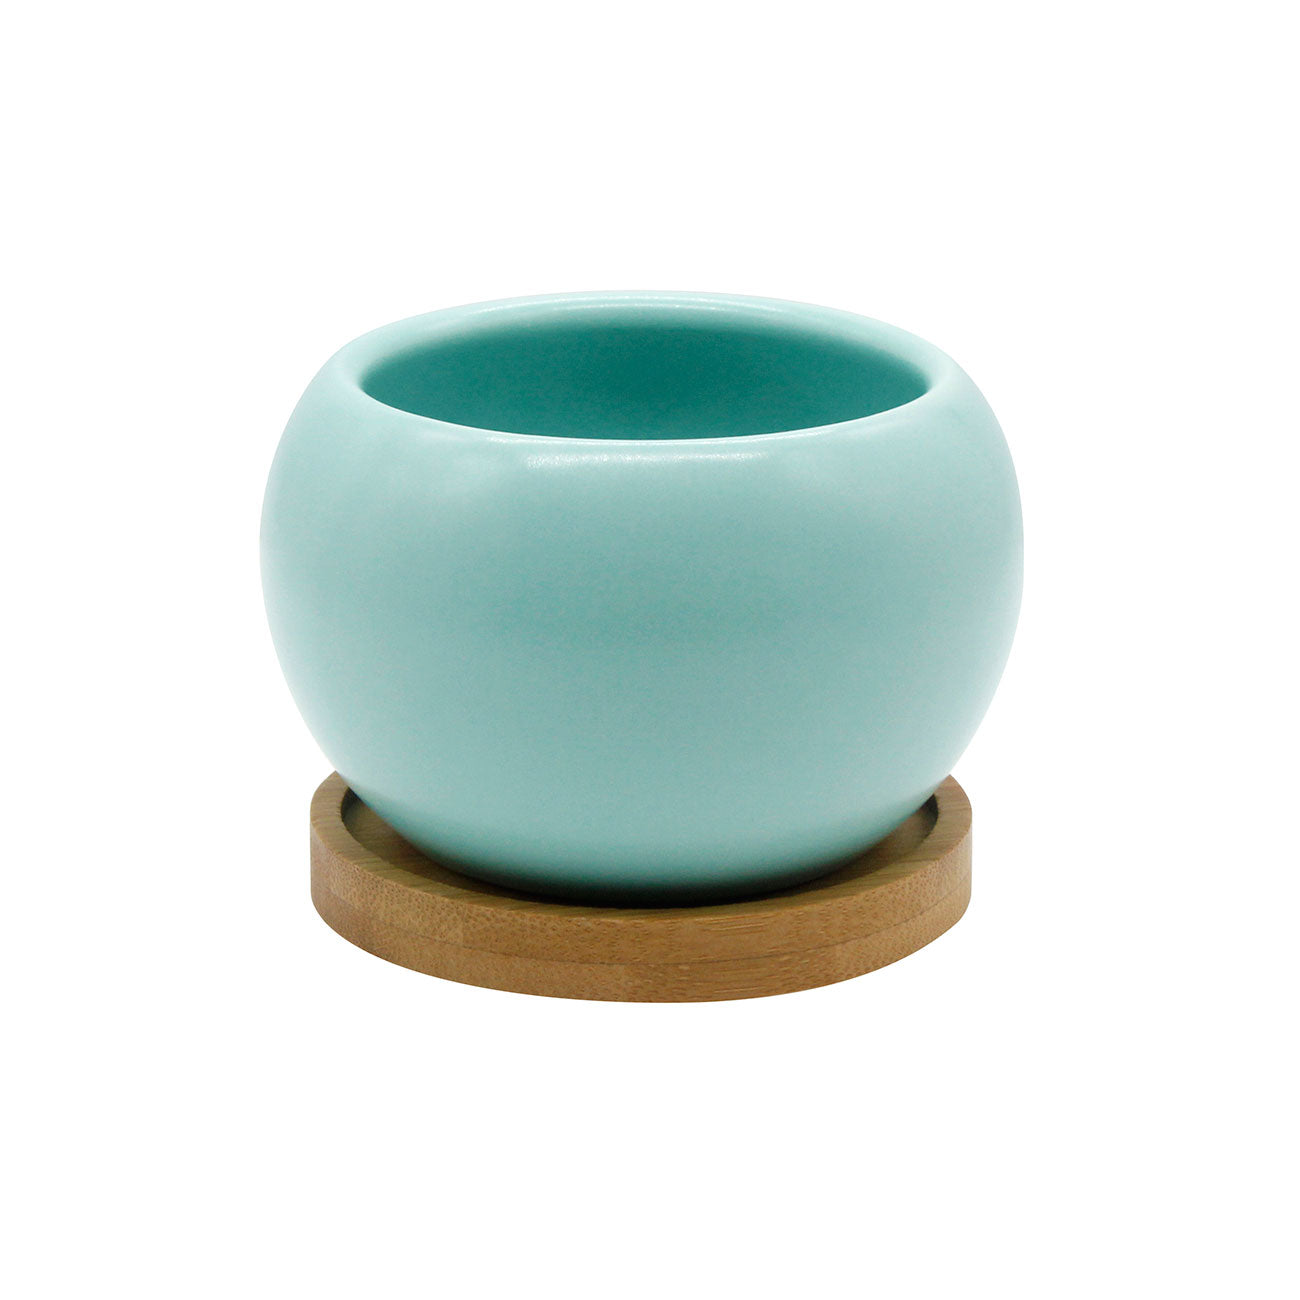 Planter & Bamboo Saucer - Blue - O Yeah Gifts!